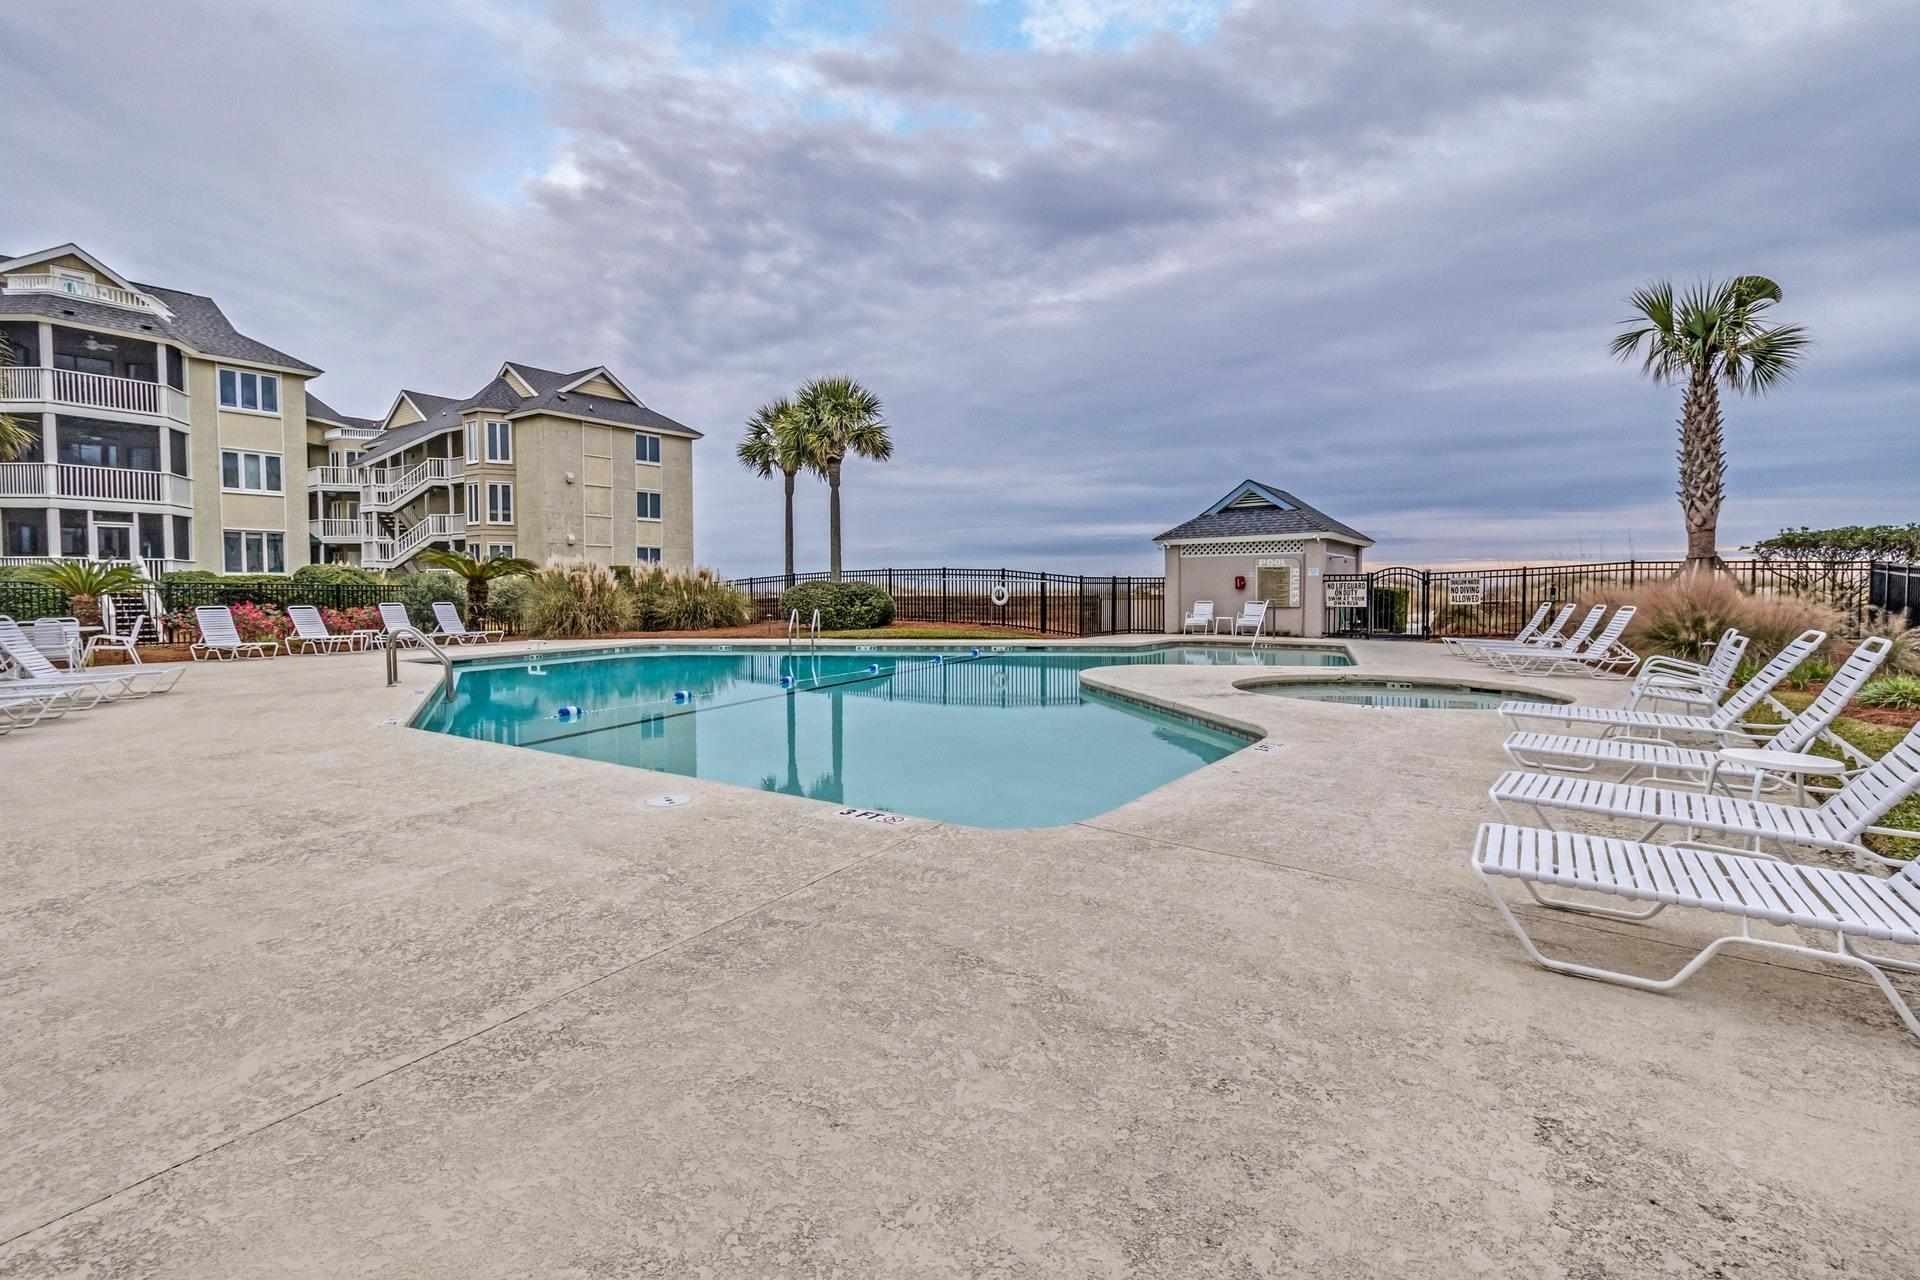 Wild Dunes Resort Homes For Sale - 102 I Tidewater, Isle of Palms, SC - 8